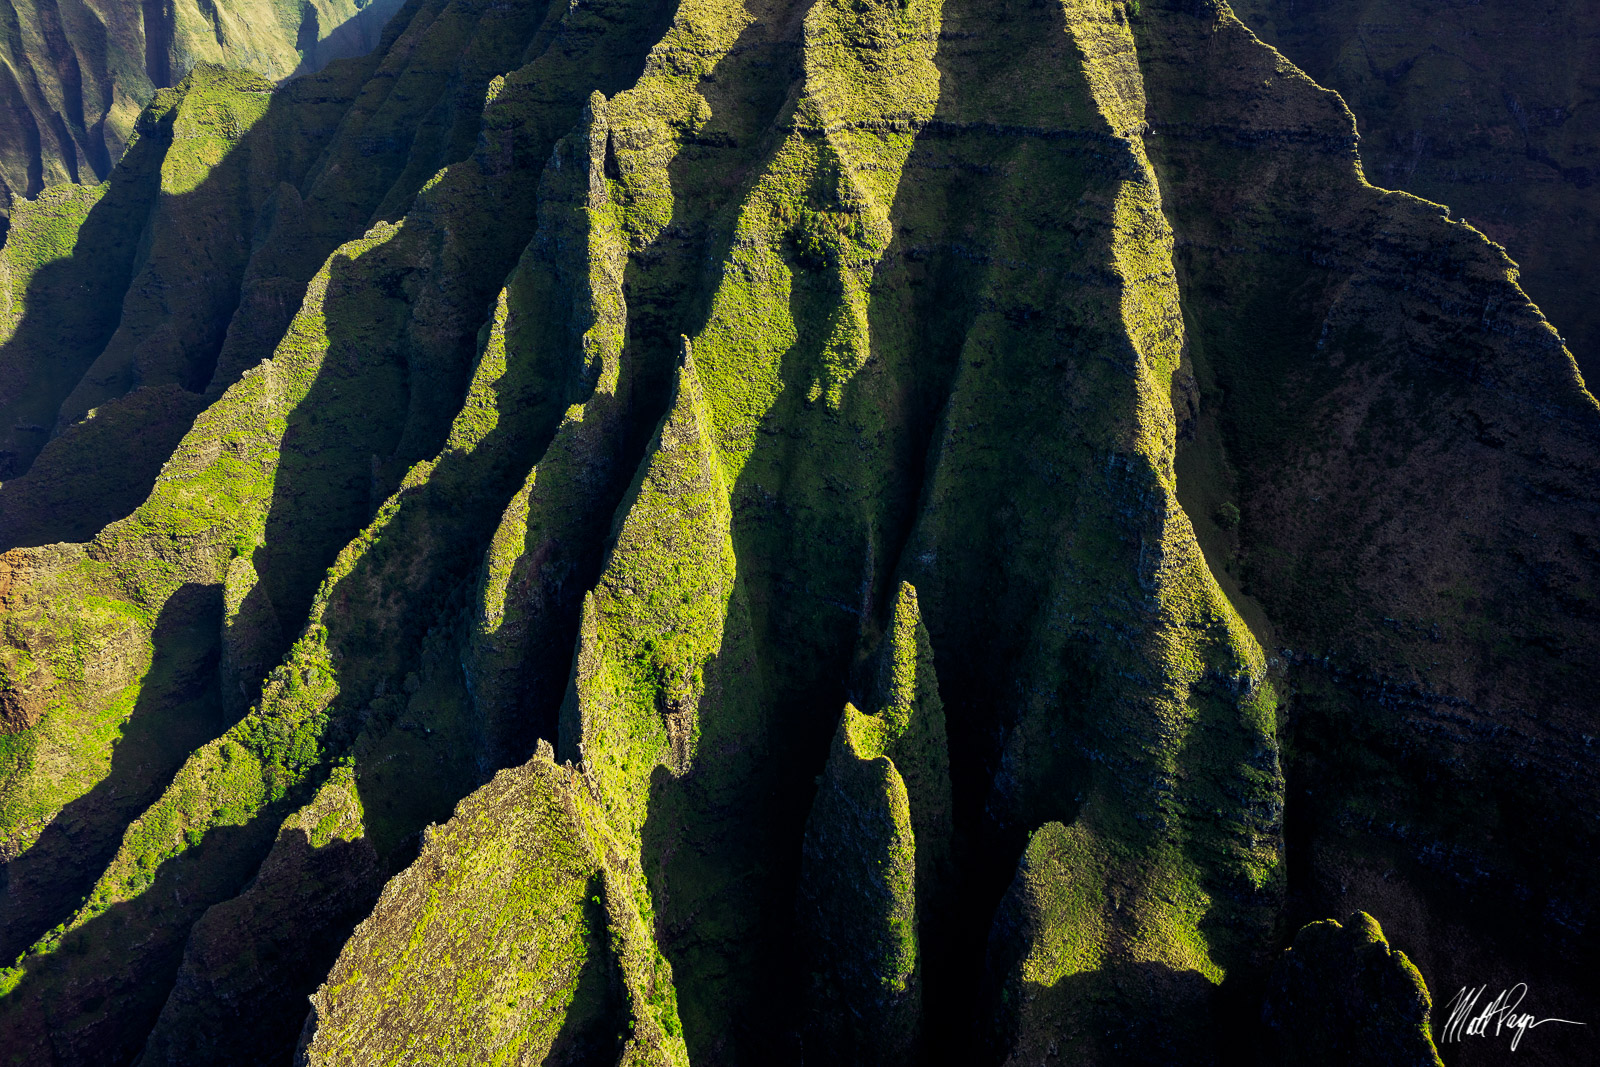 The absolutely insane view of the Na Pali Coast as seen from above in a helicopter.Photo © copyright by Matt Payne.